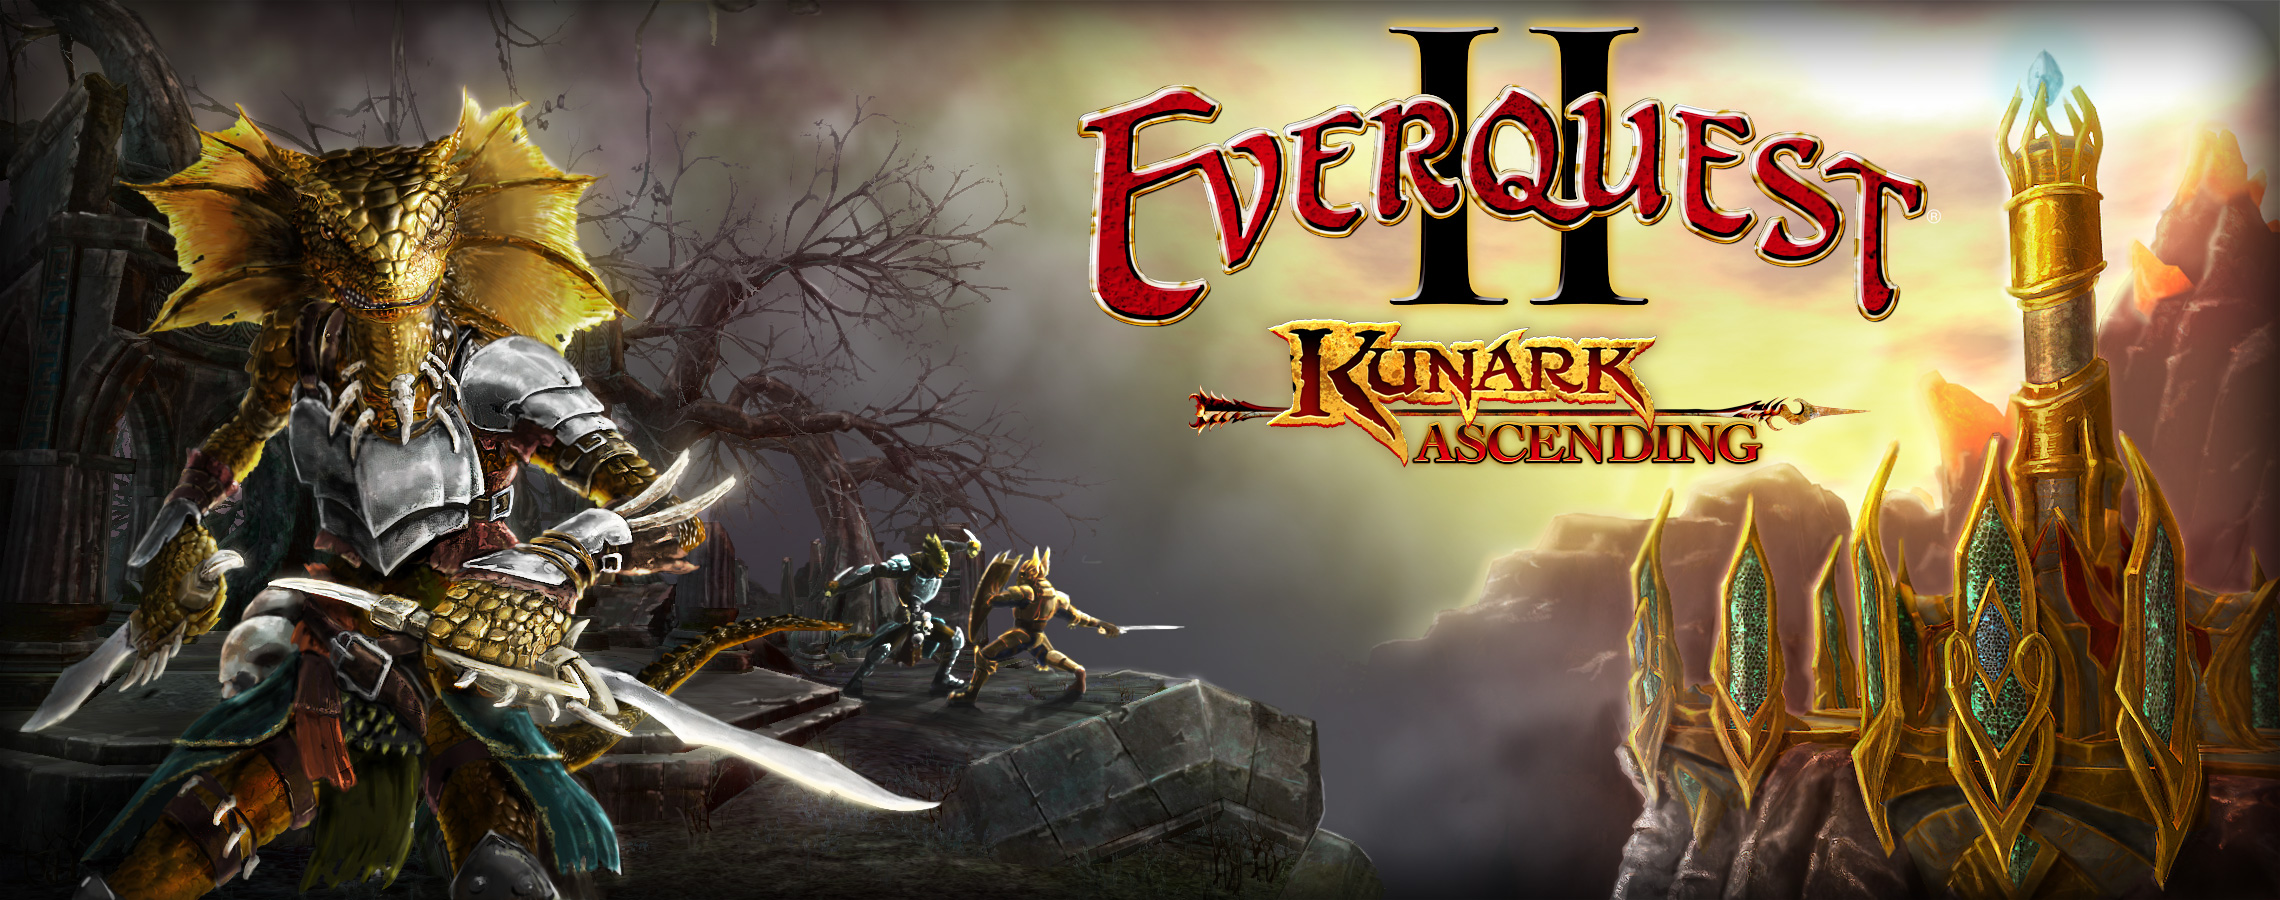 EQ2Wire » EQ2Wire's Kunark Ascending Frequently Asked Questions